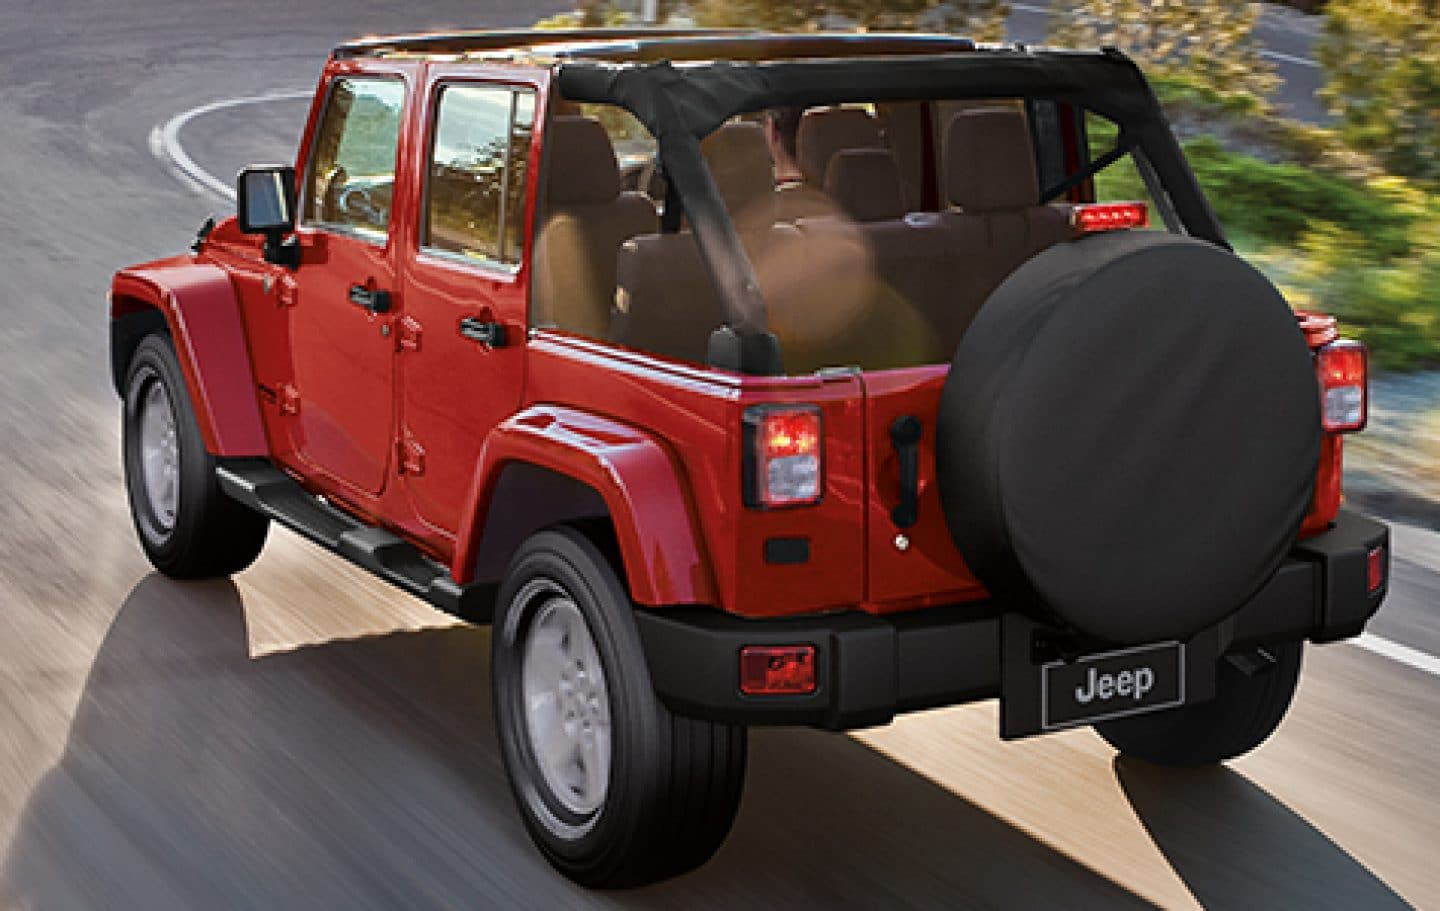 Jeep Wrangler Unlimited Body Color Fender Flares